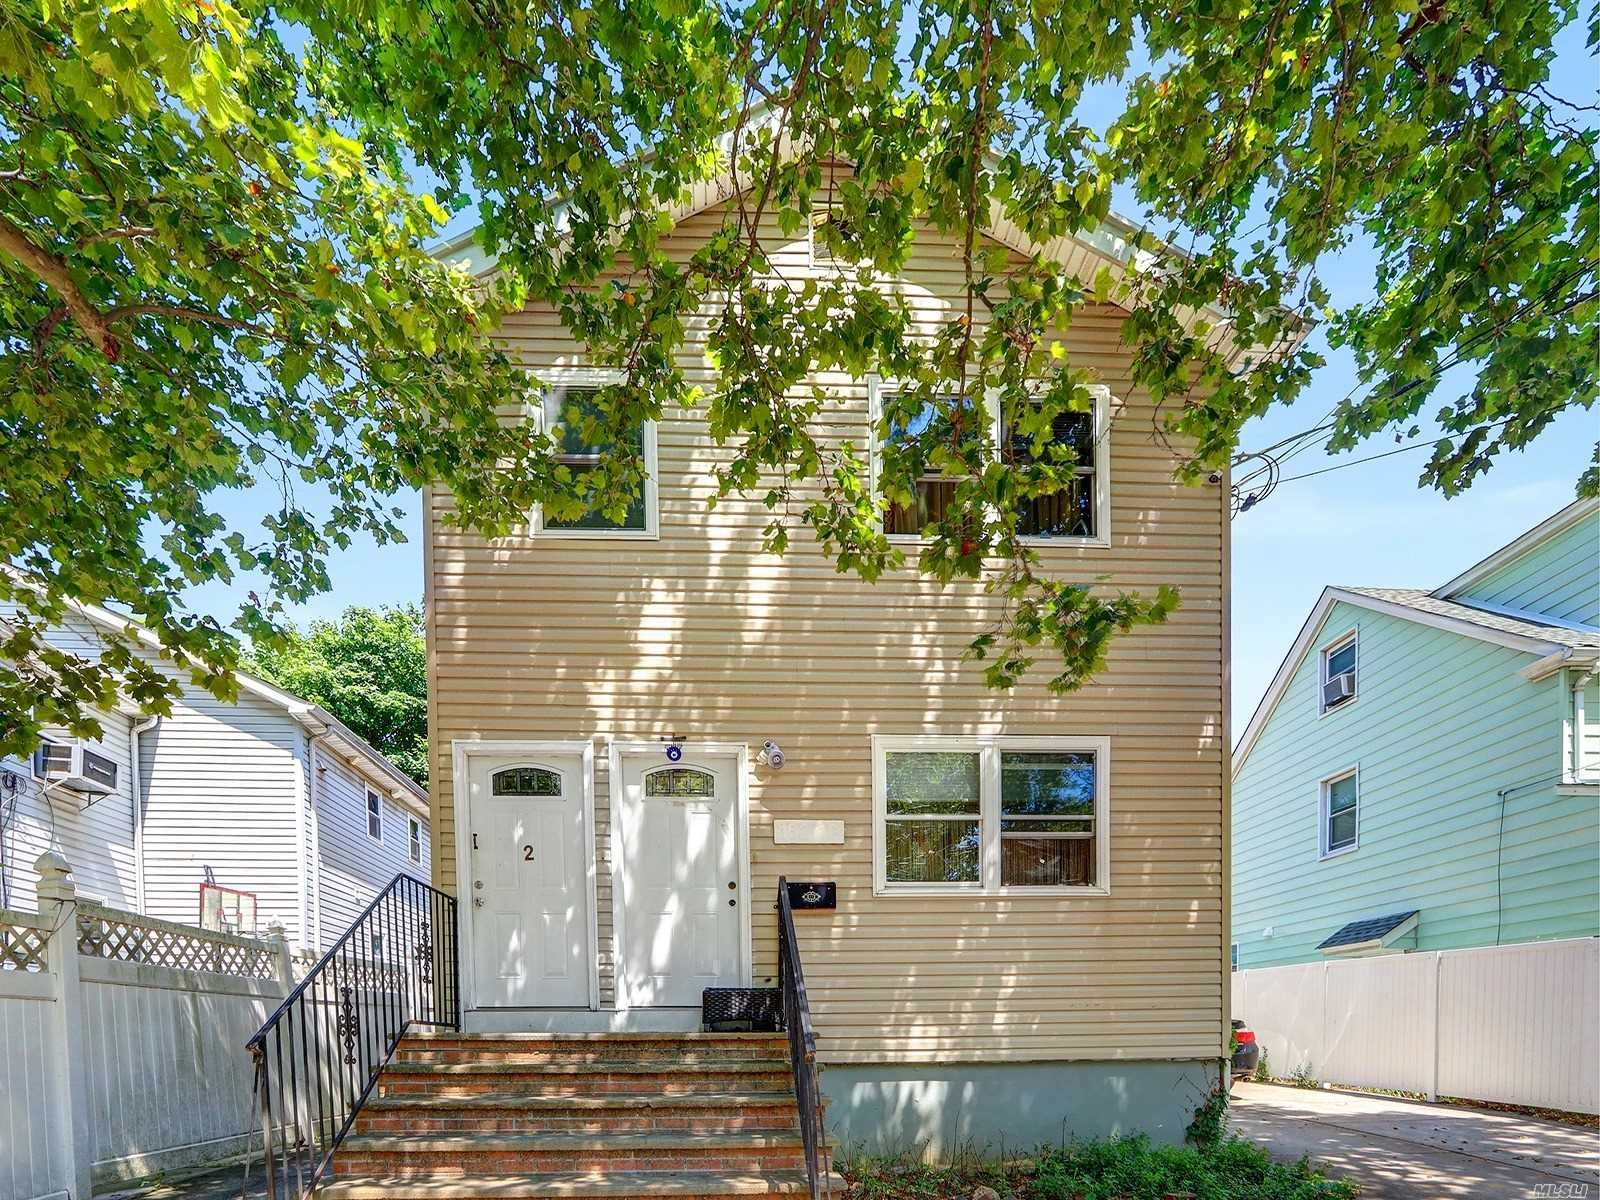 162-19 75th Ave Ave, Fresh Meadows, NY 11366 - MLS#: 3238125